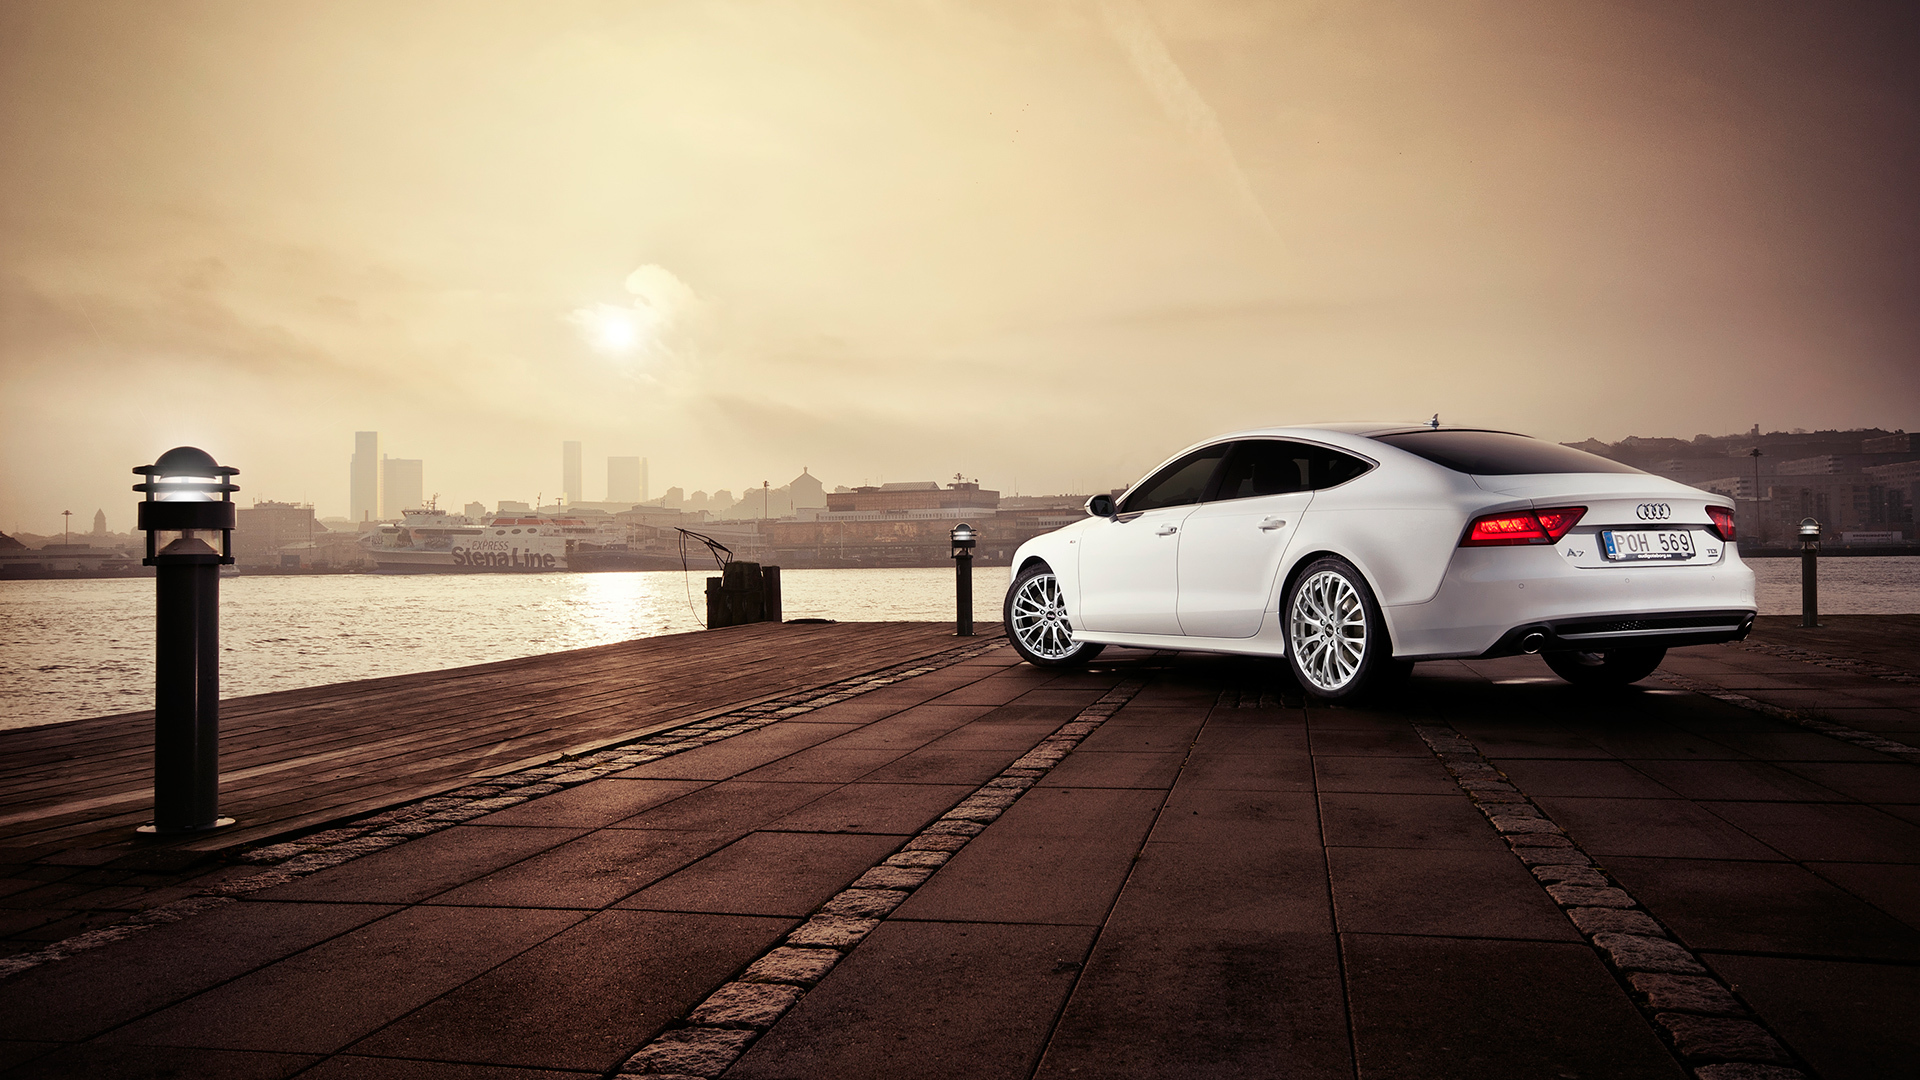 Download Wallpaper River Water Road Audi Promenade City A7 Sky Embankment 1920x1080 On The Waterfront